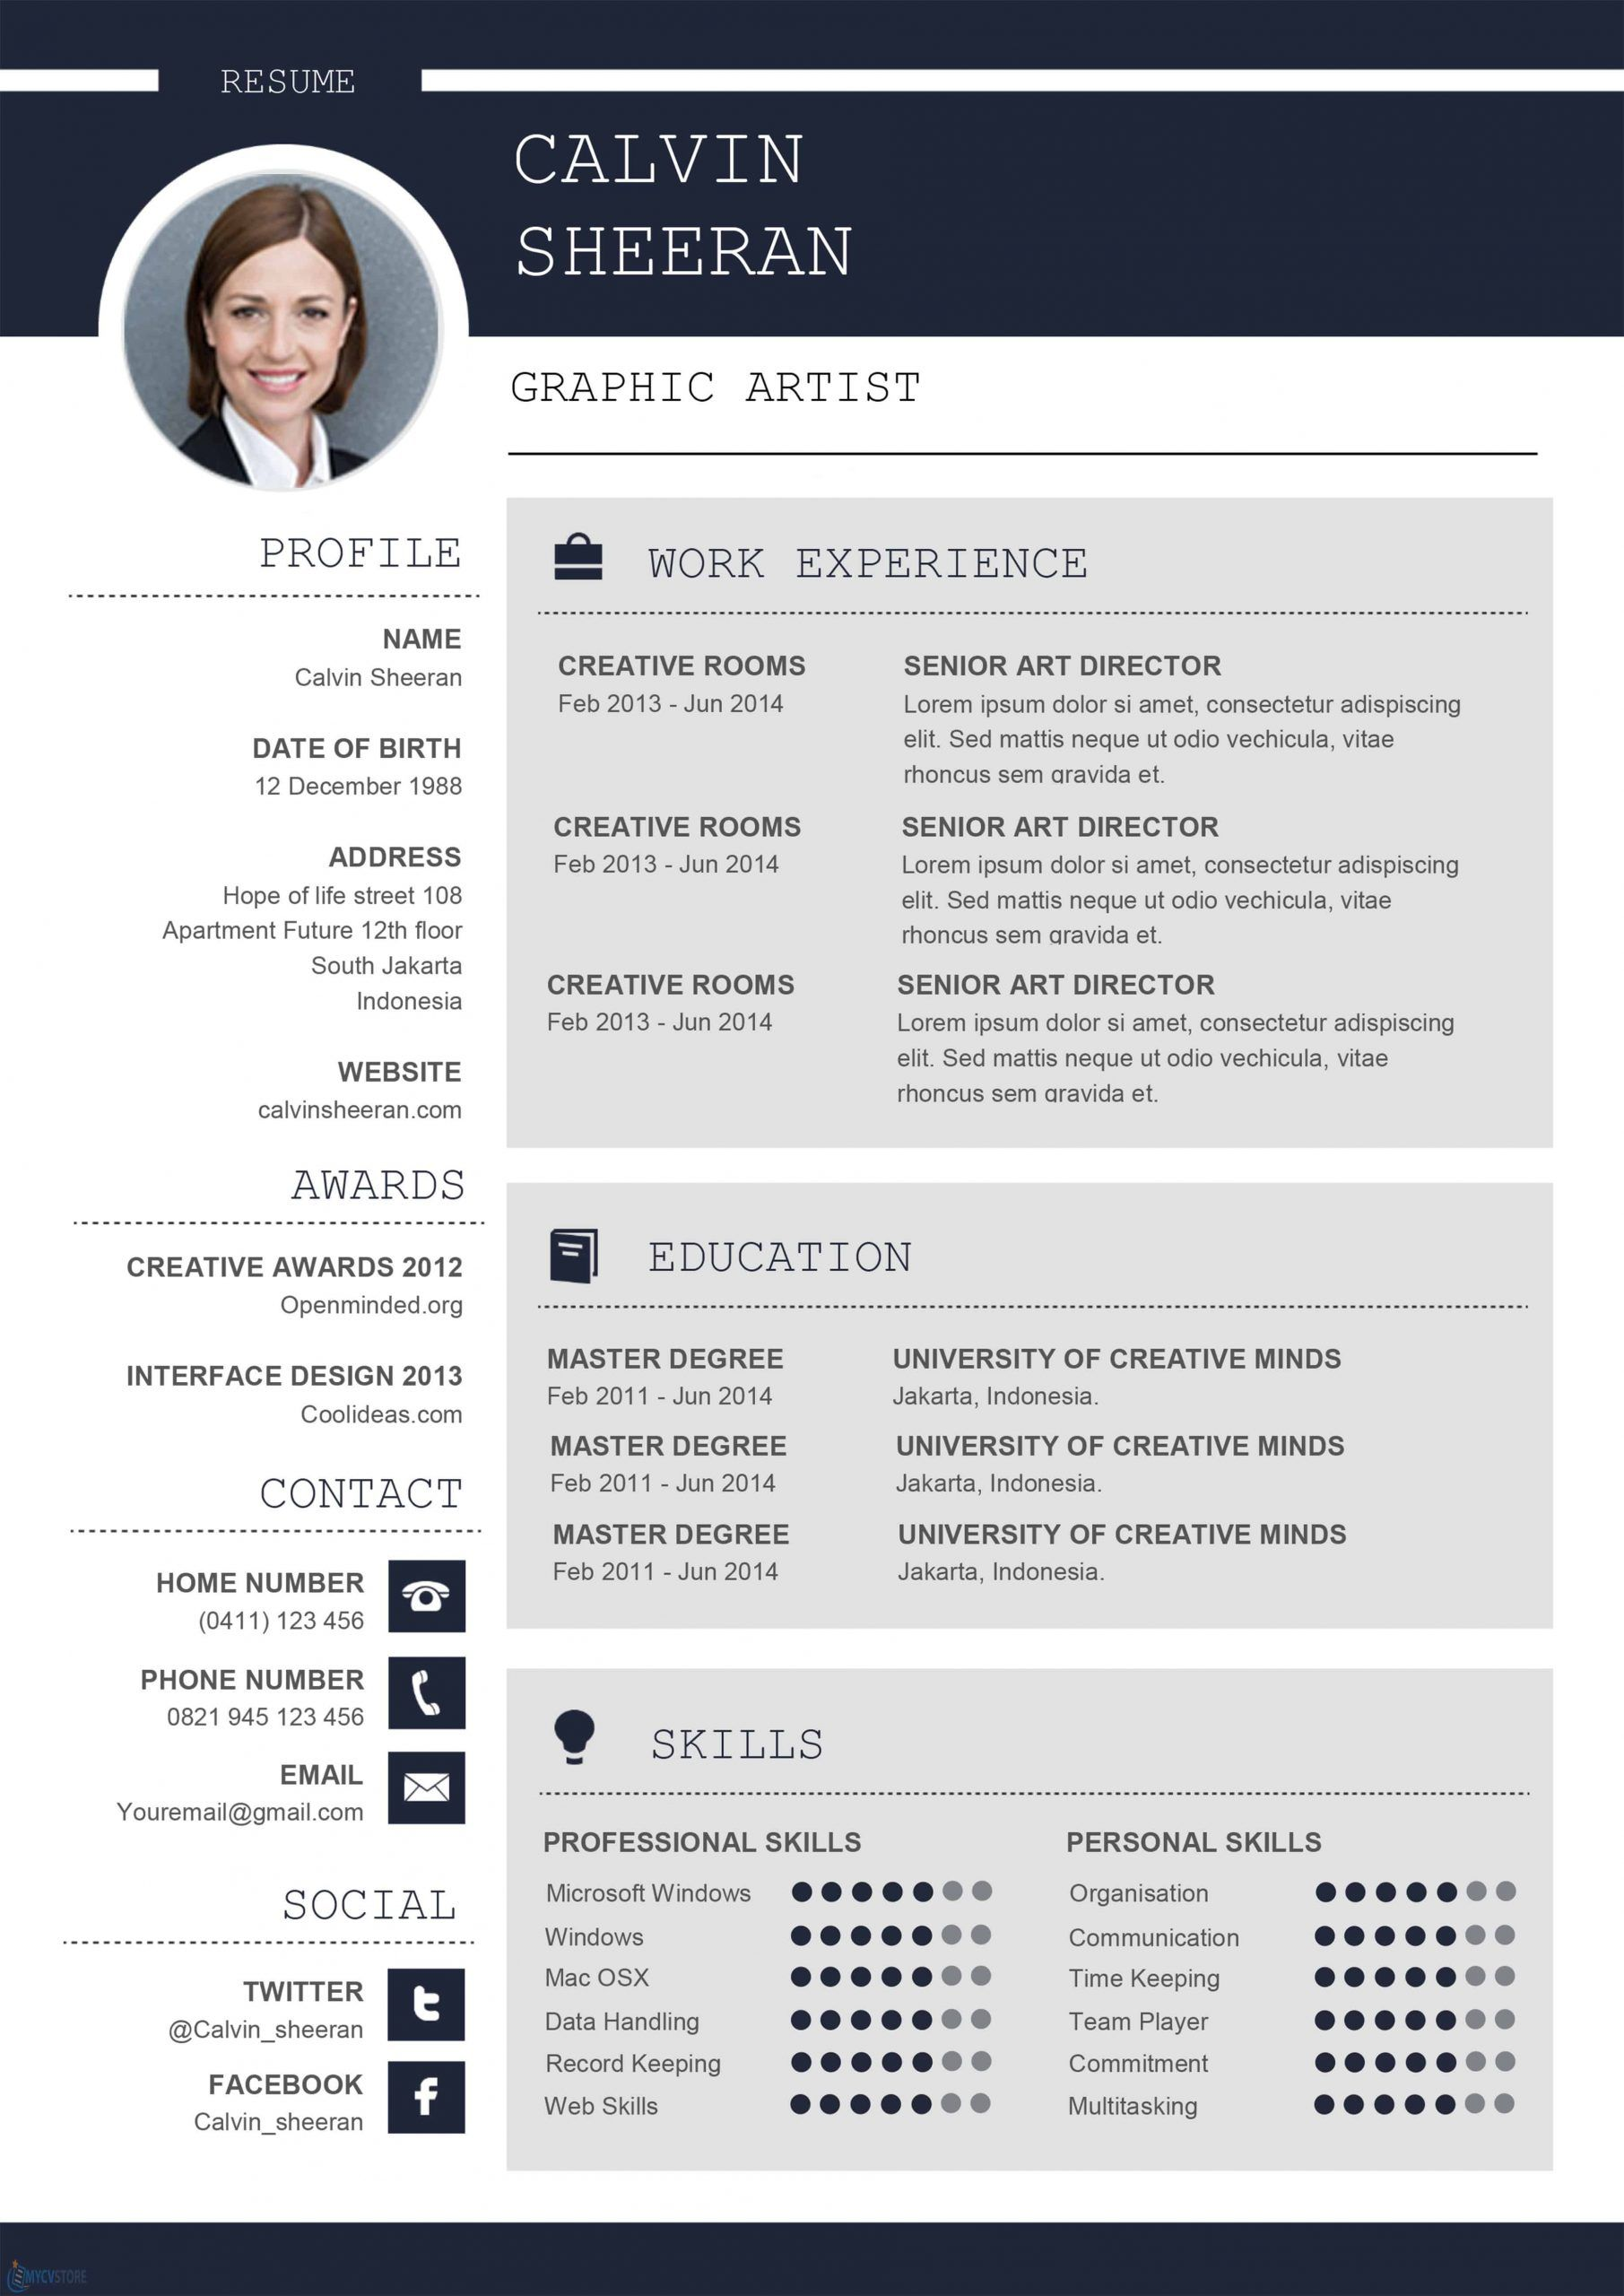 002 Incredible Resume Microsoft Word Template Picture  Cv/resume Design Tutorial With Federal DownloadFull